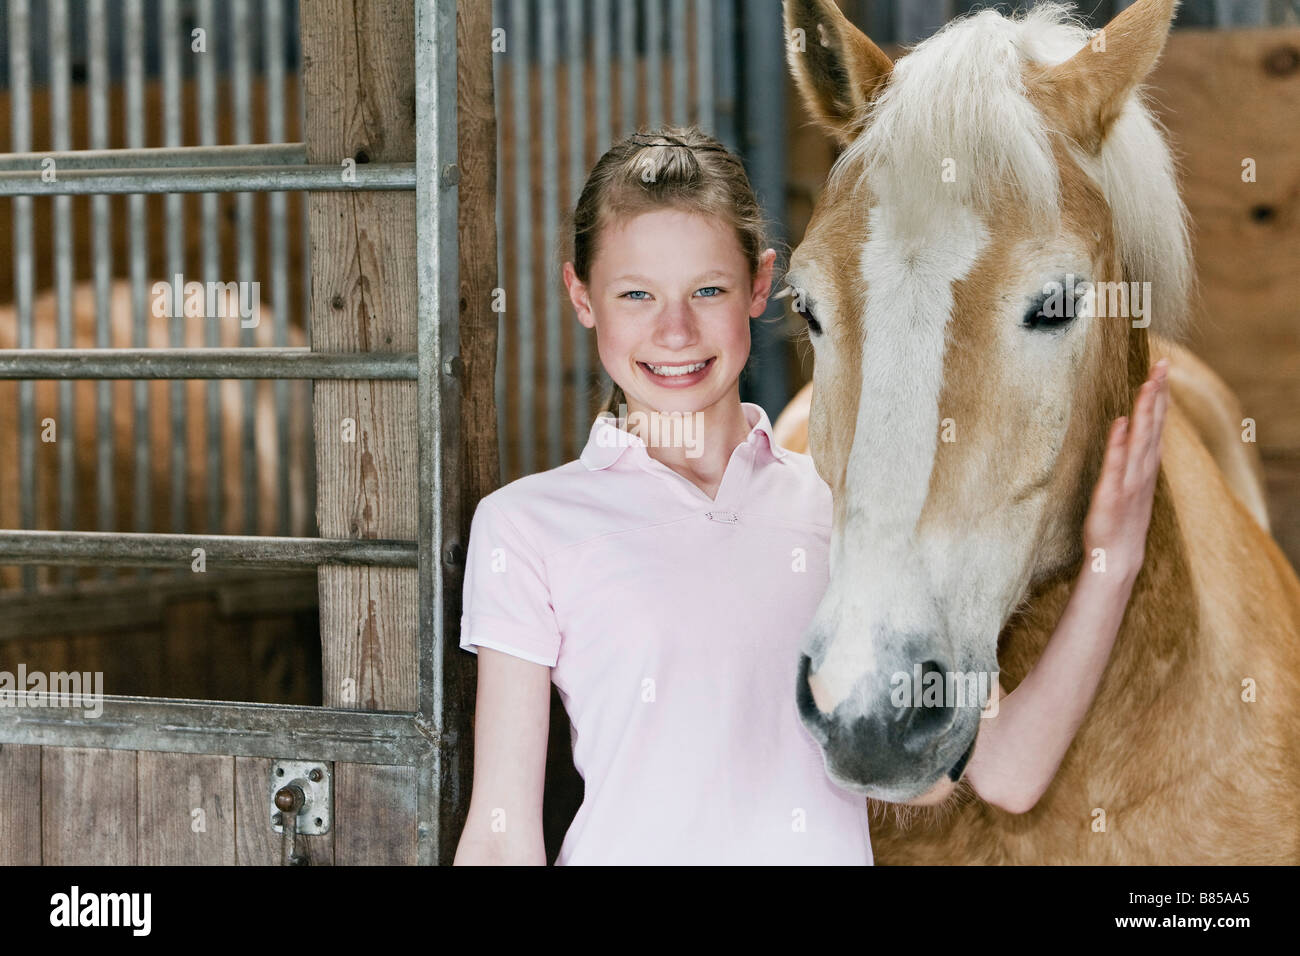 portrait of young girl with horse in stable - Stock Image